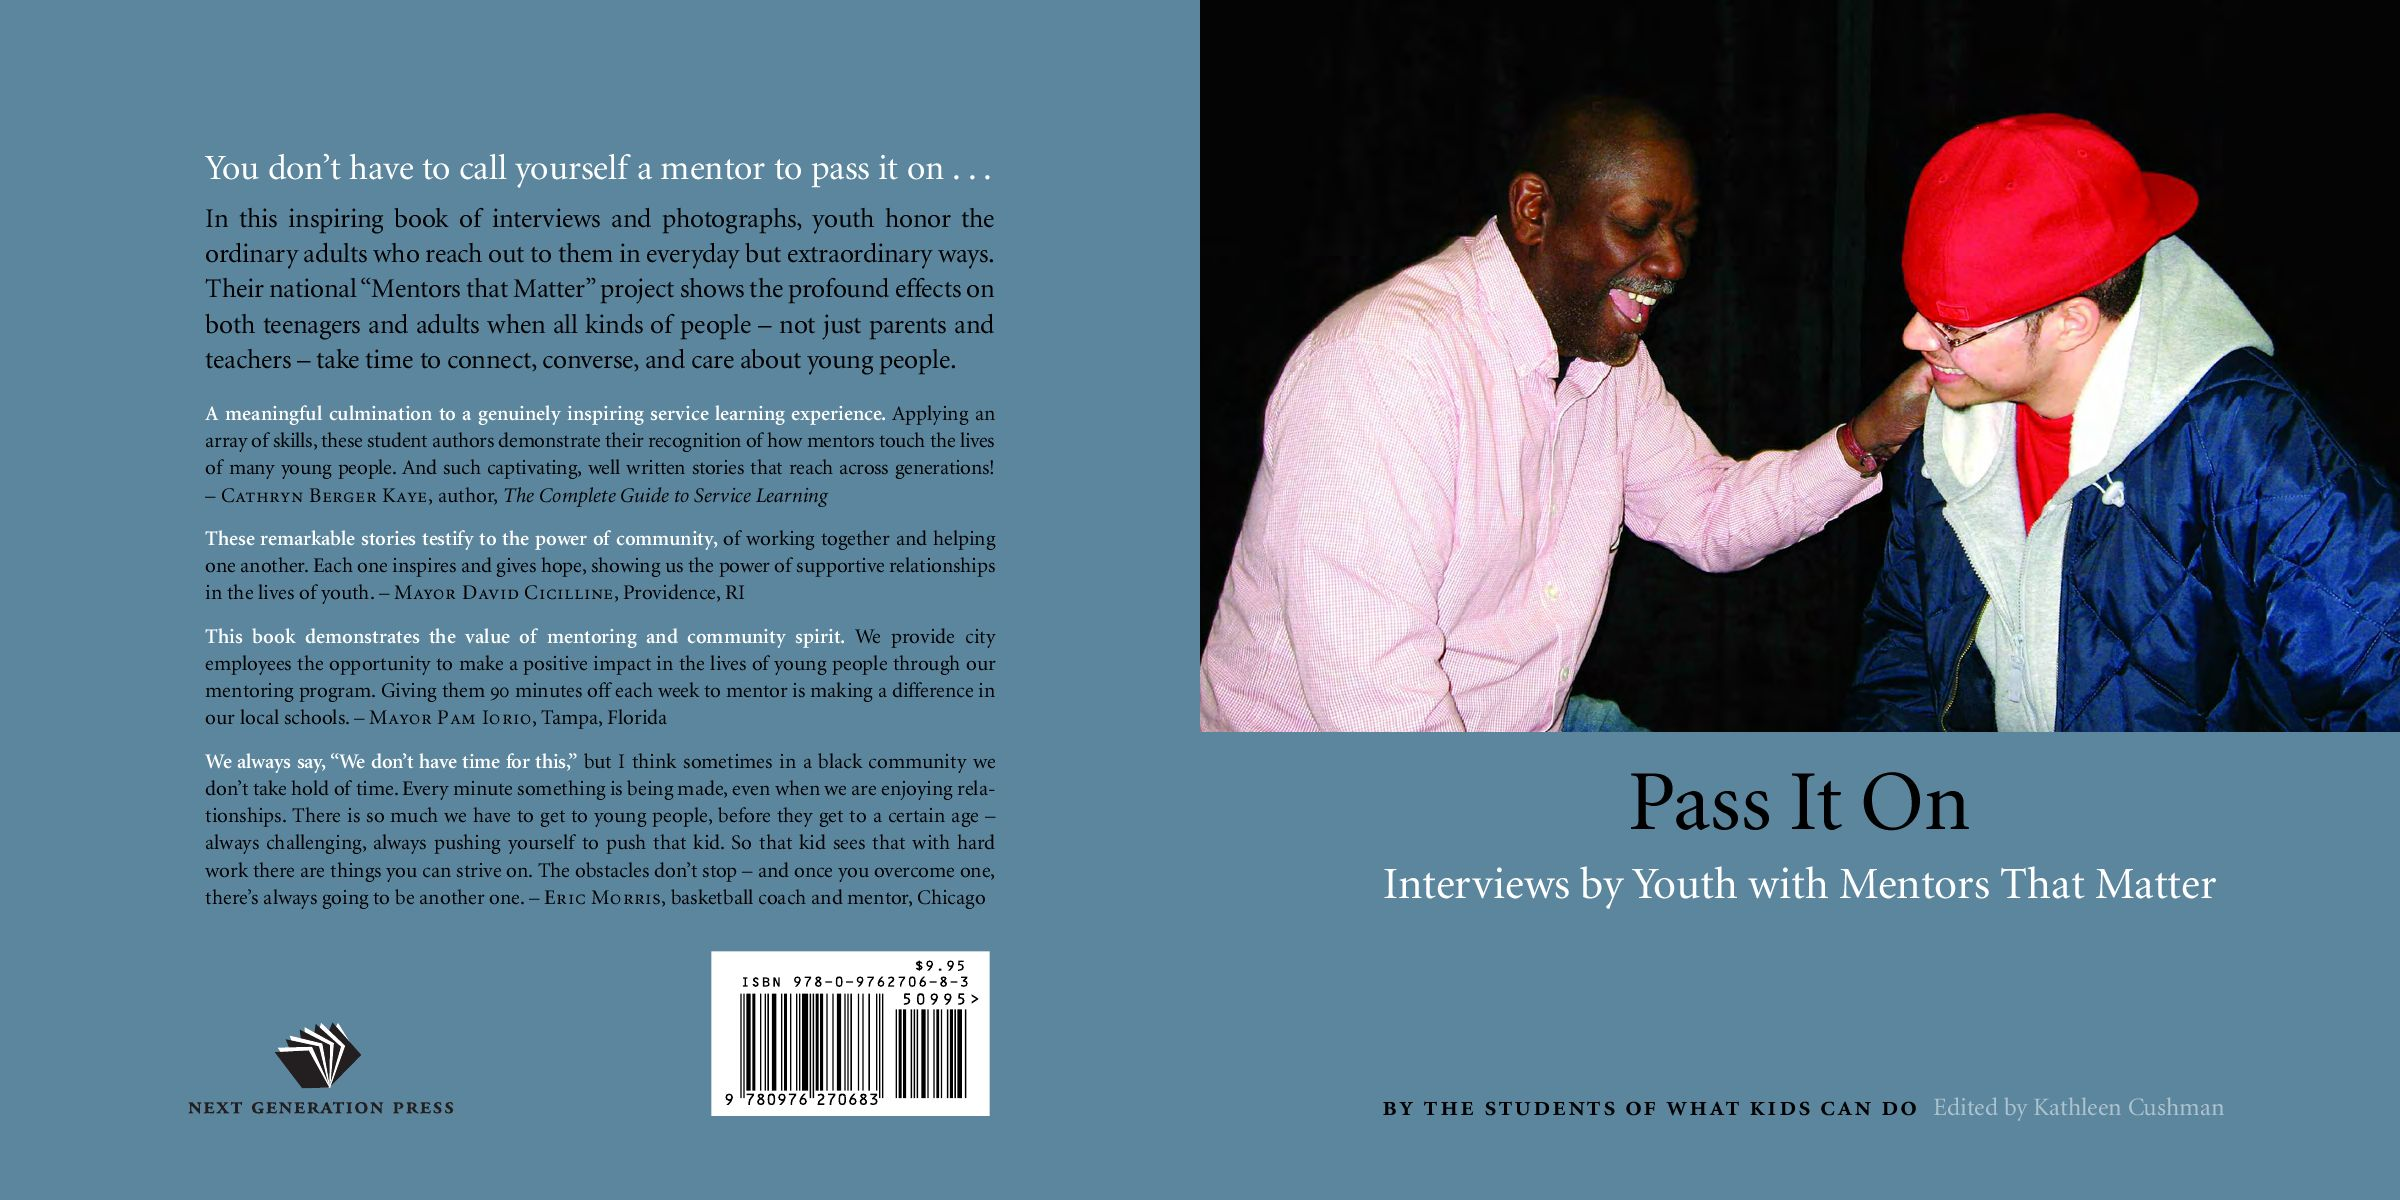 Pass It On Interviews by Youth wiht